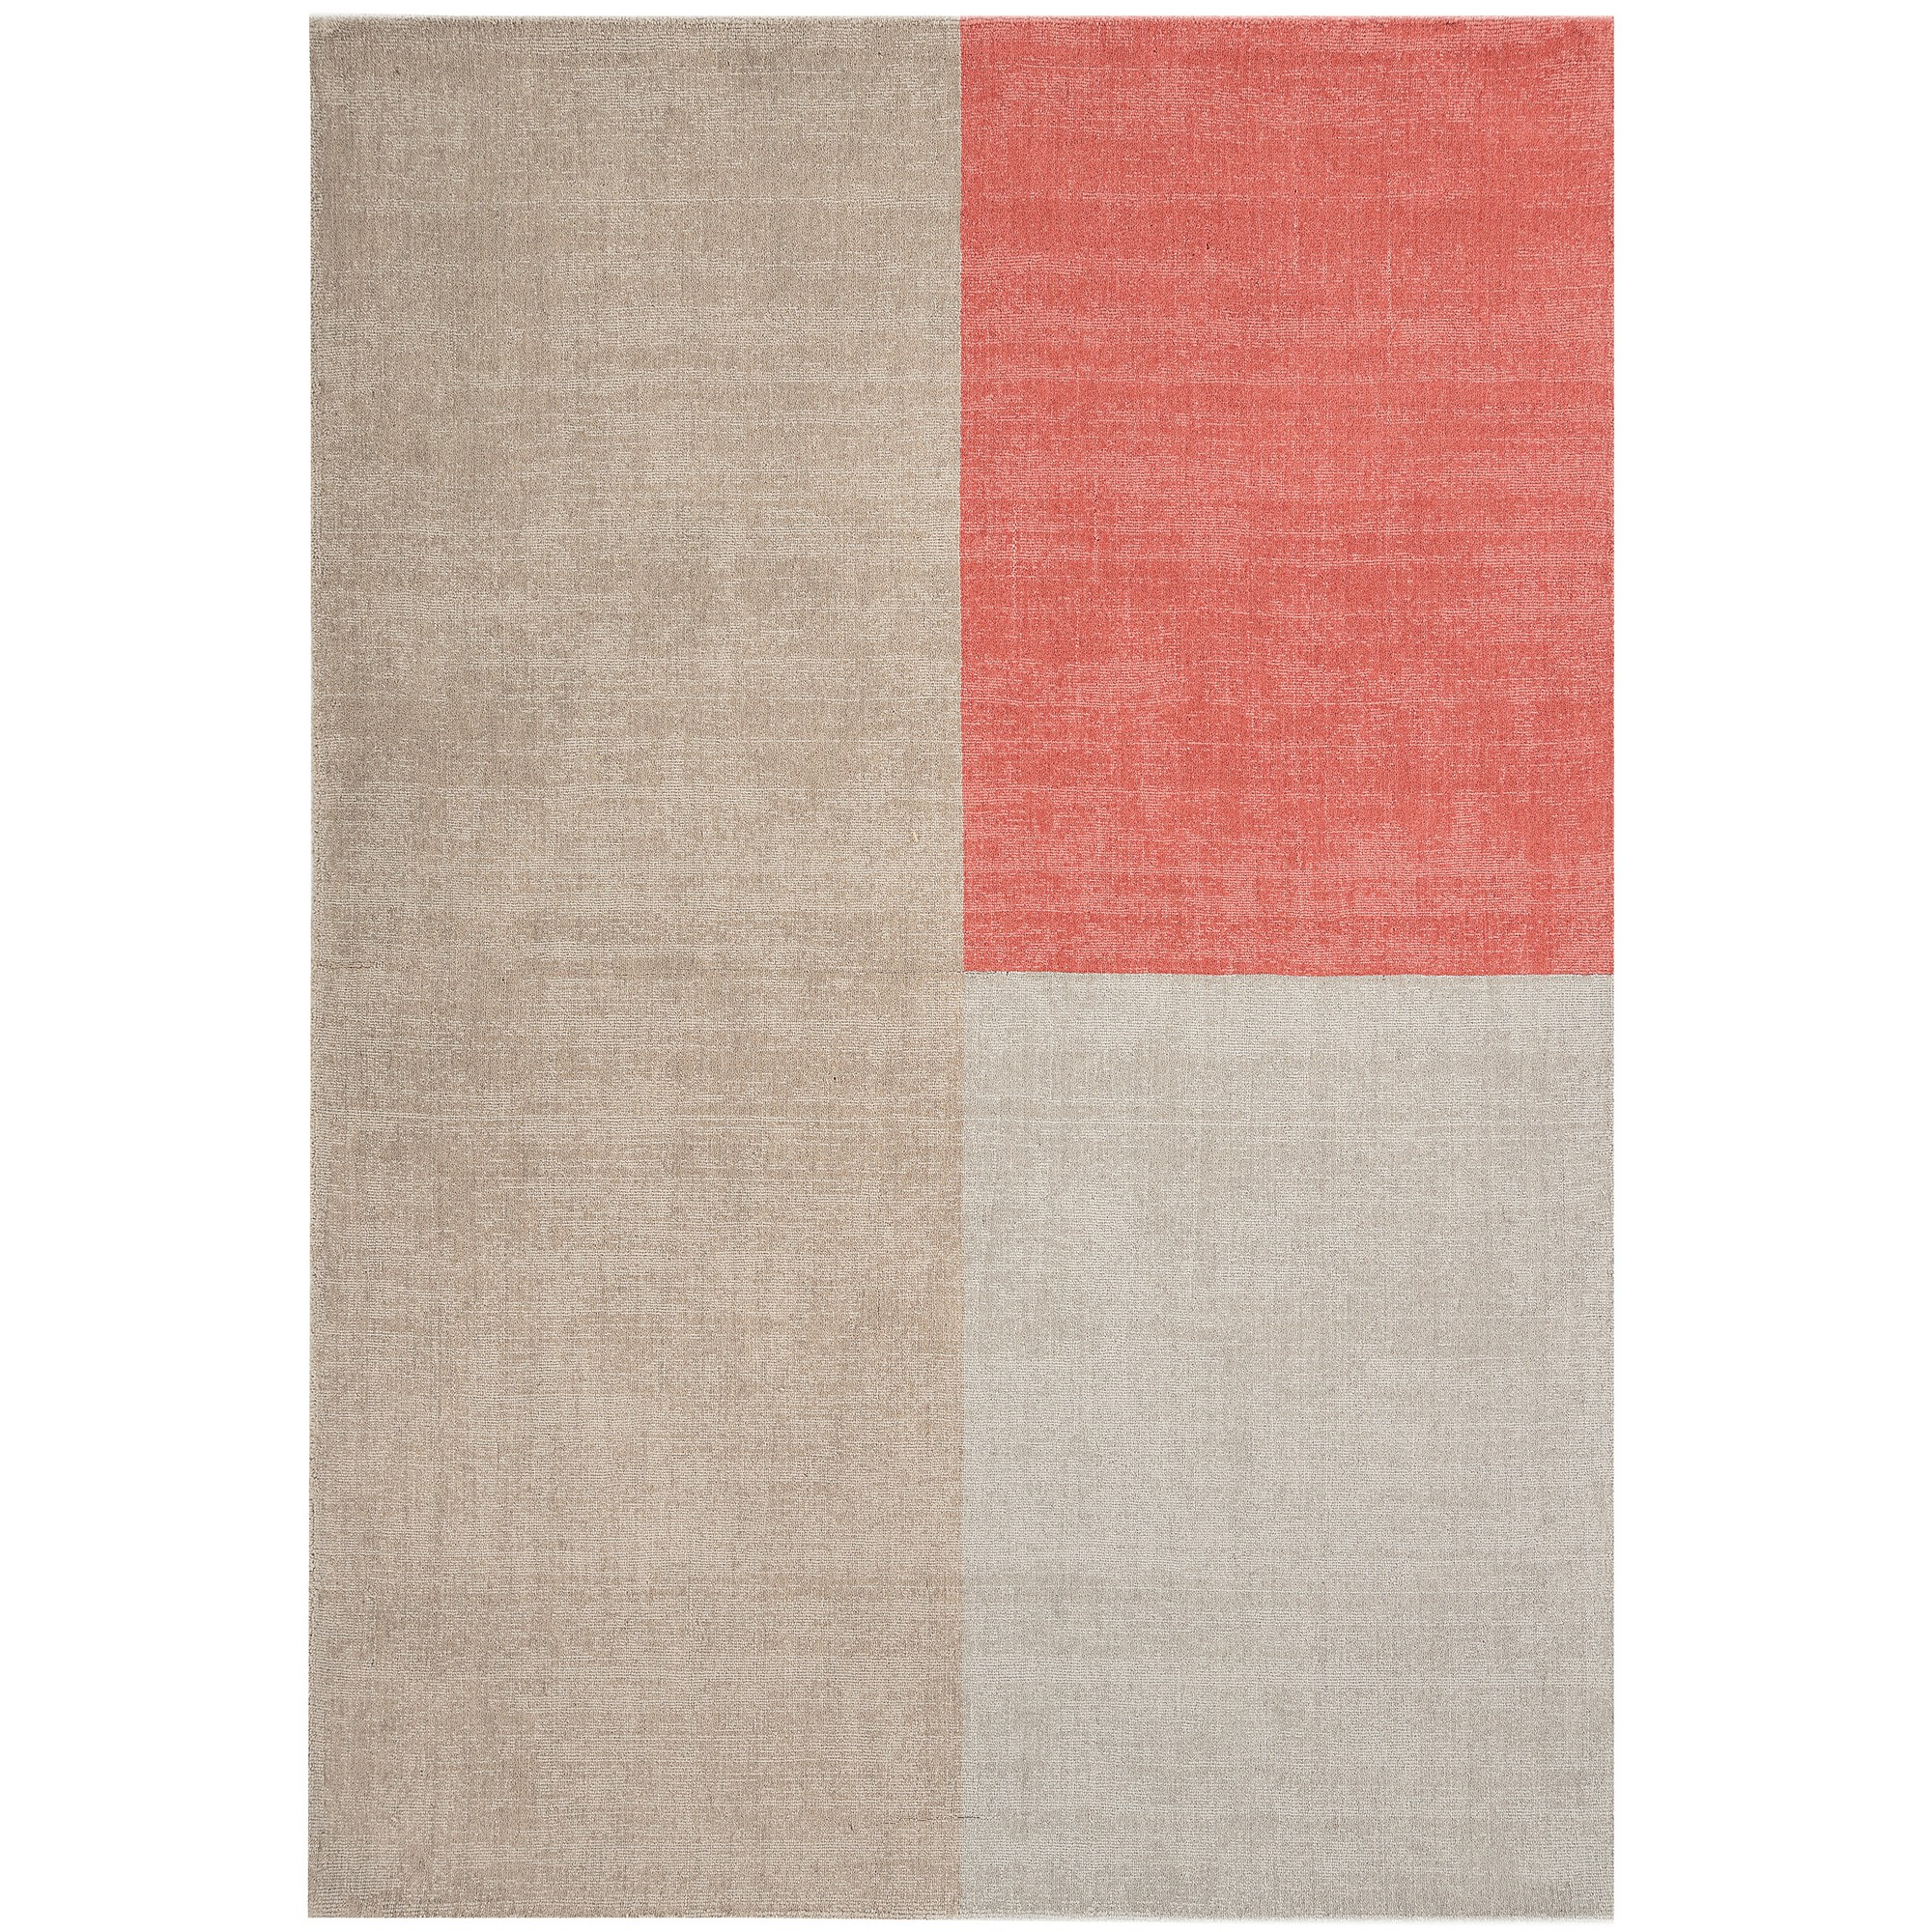 Blox Rugs in Coral